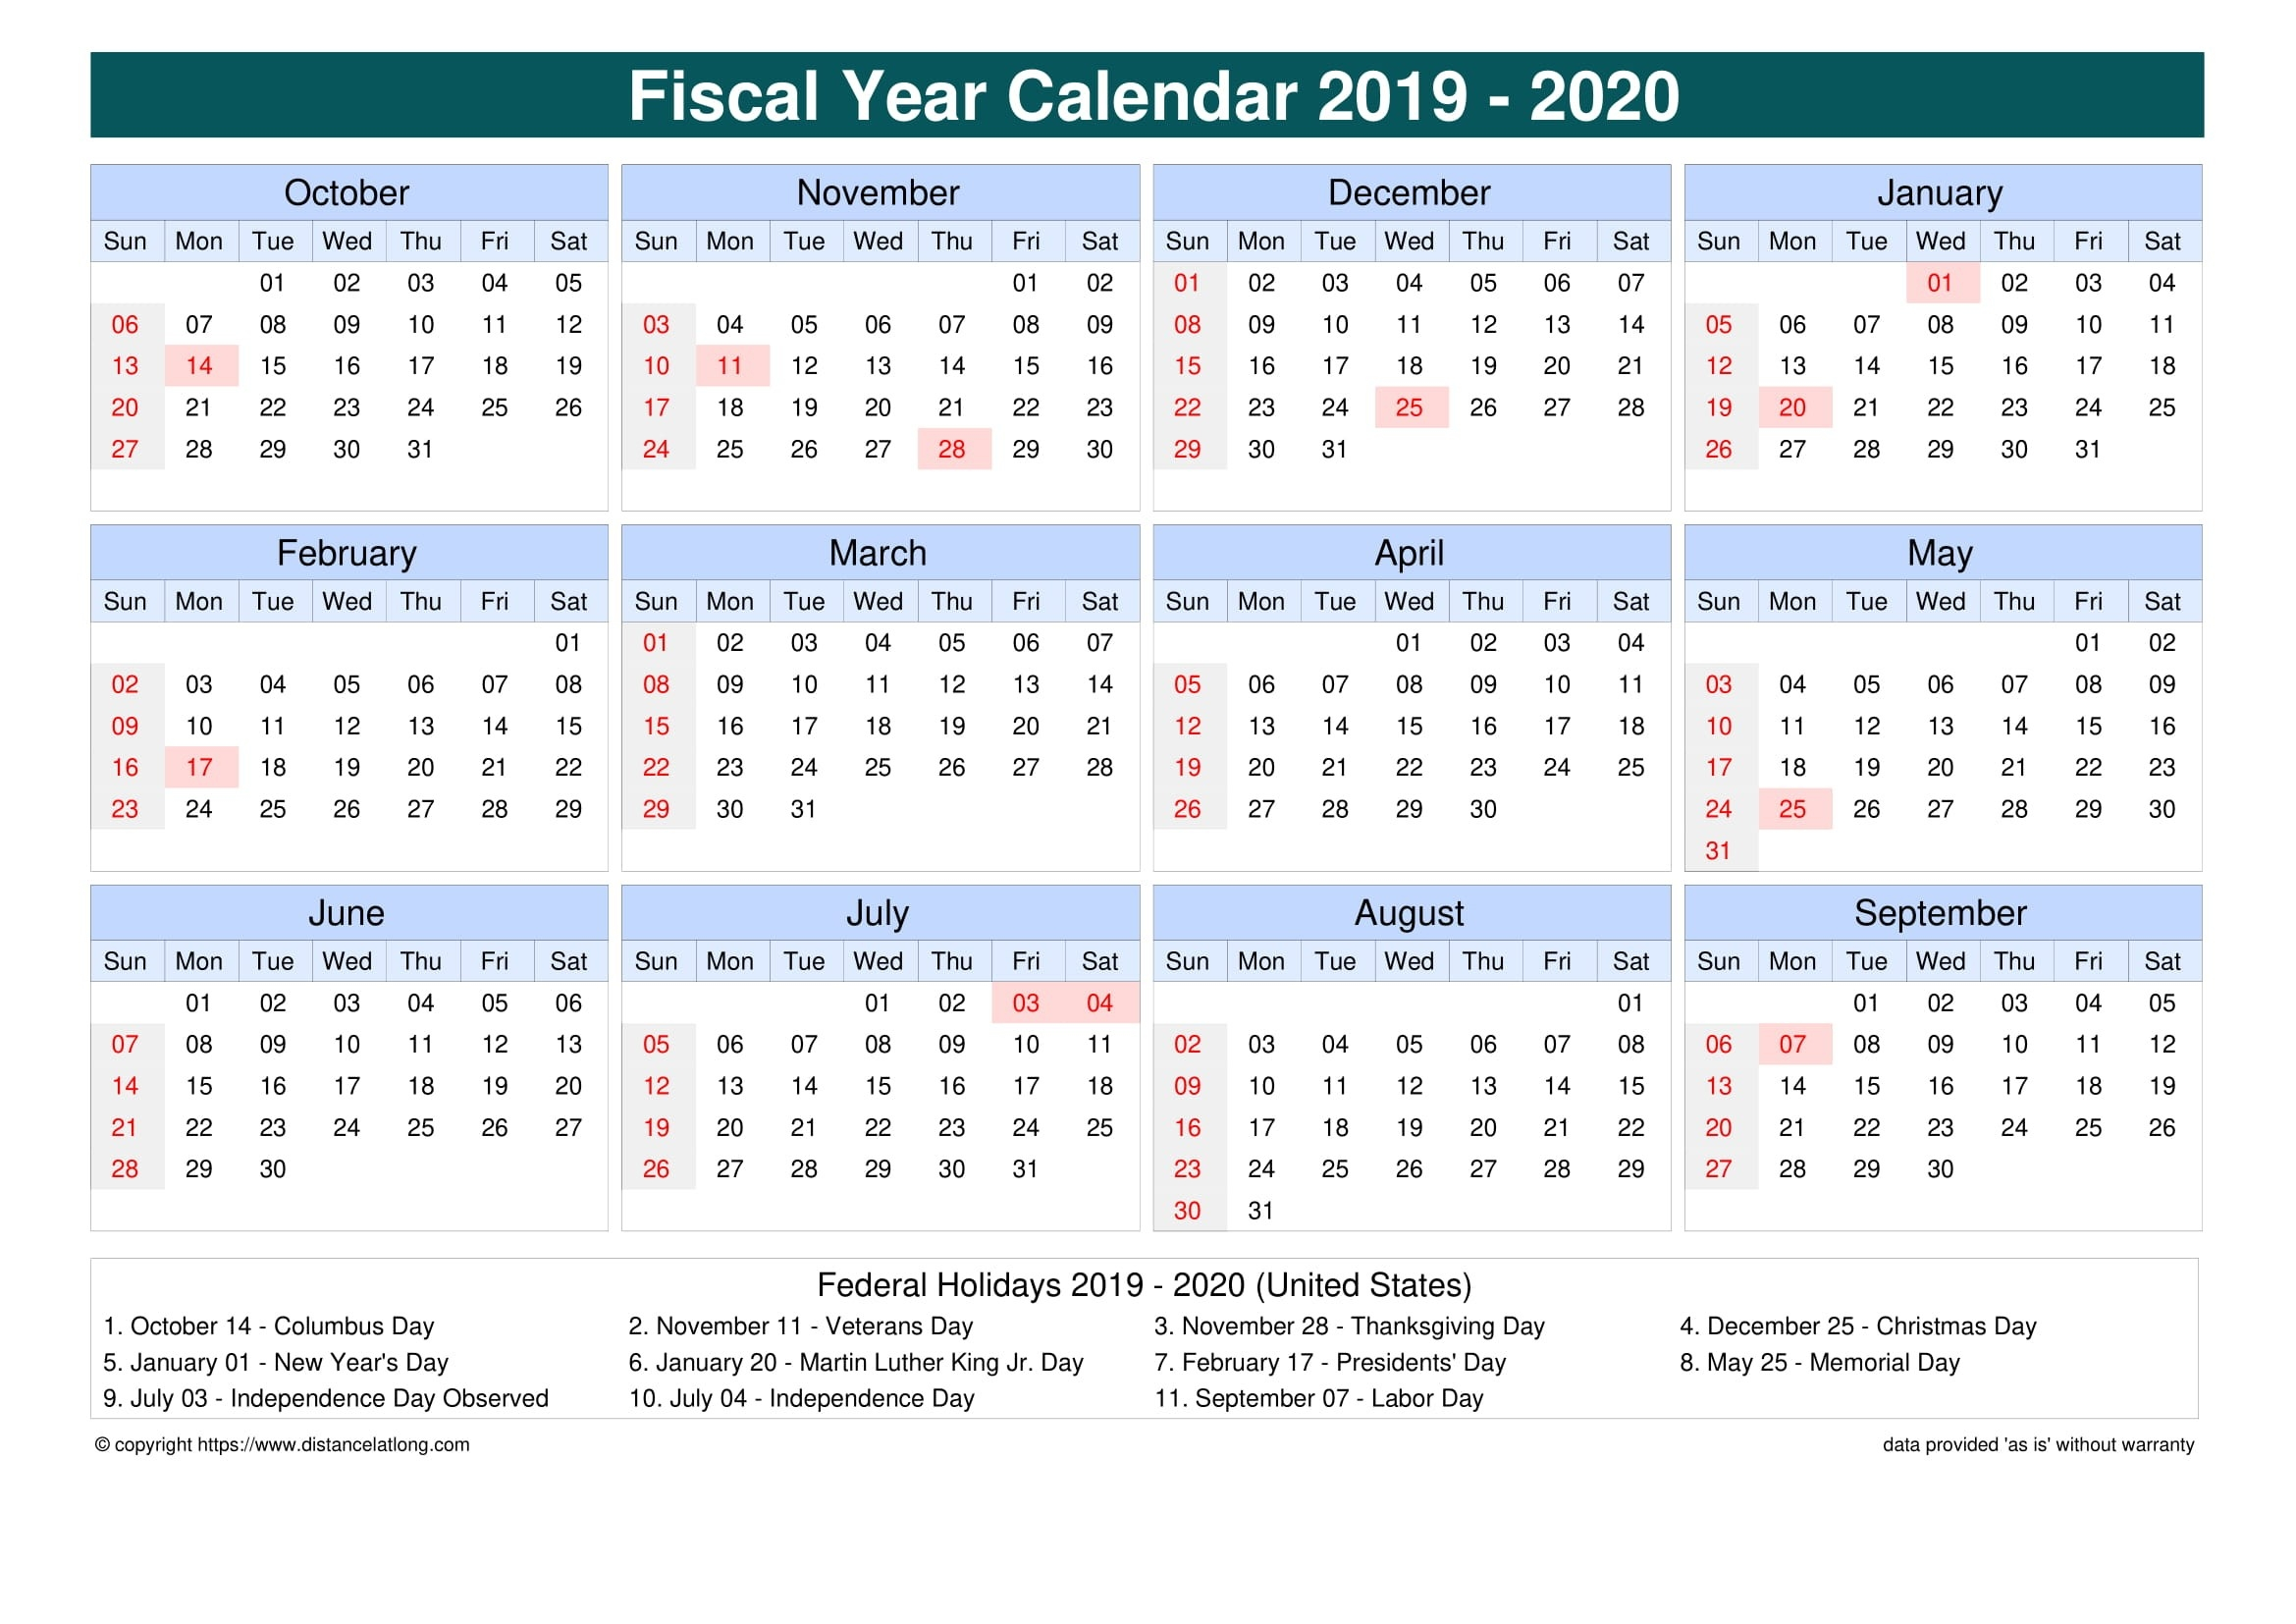 Fiscal Year 2019-2020 Calendar Templates, Free Printable  Download Financial Year Calendar